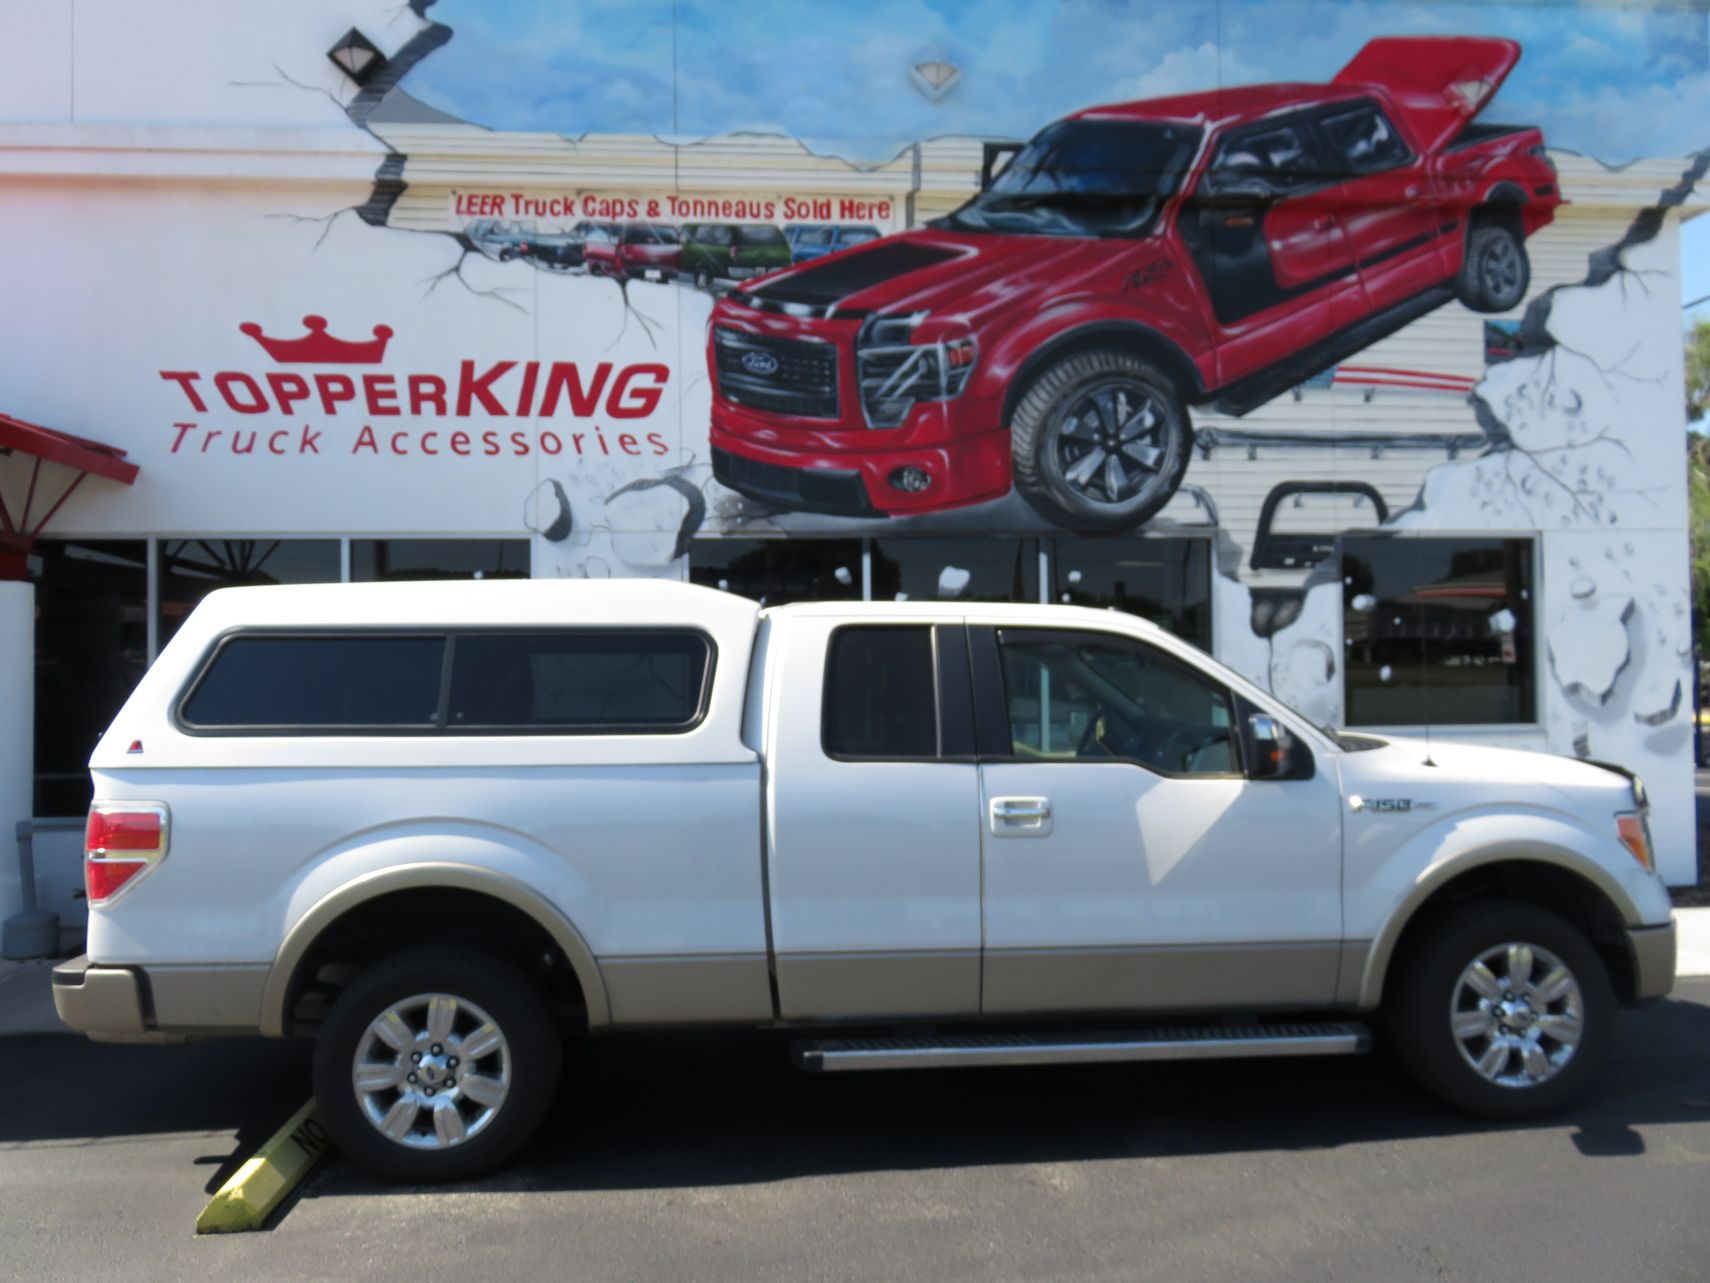 2008 Ford F150 With LEER 180 Custom Hitch And Running Boards By TopperKING